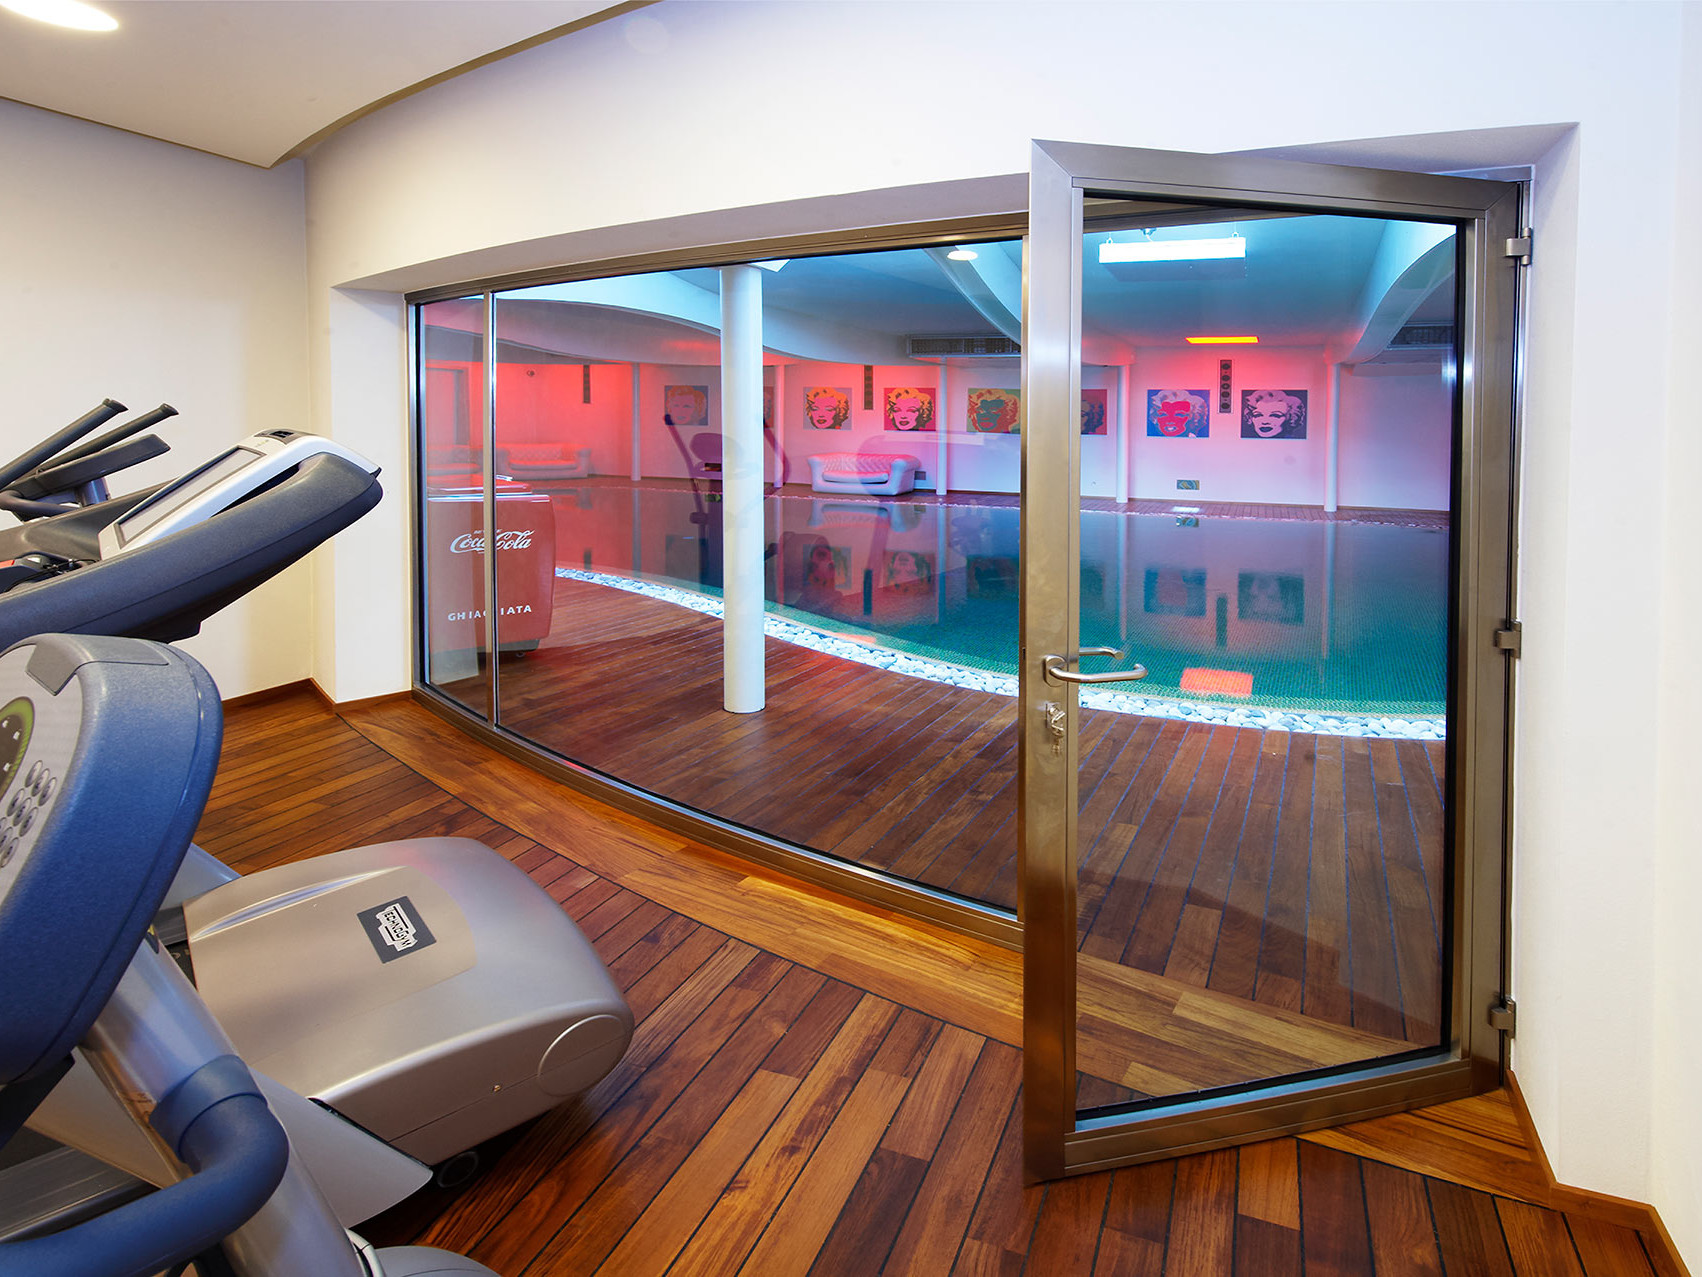 Thermally Broken Stainless steel Door and fenestration in the gym of the villa